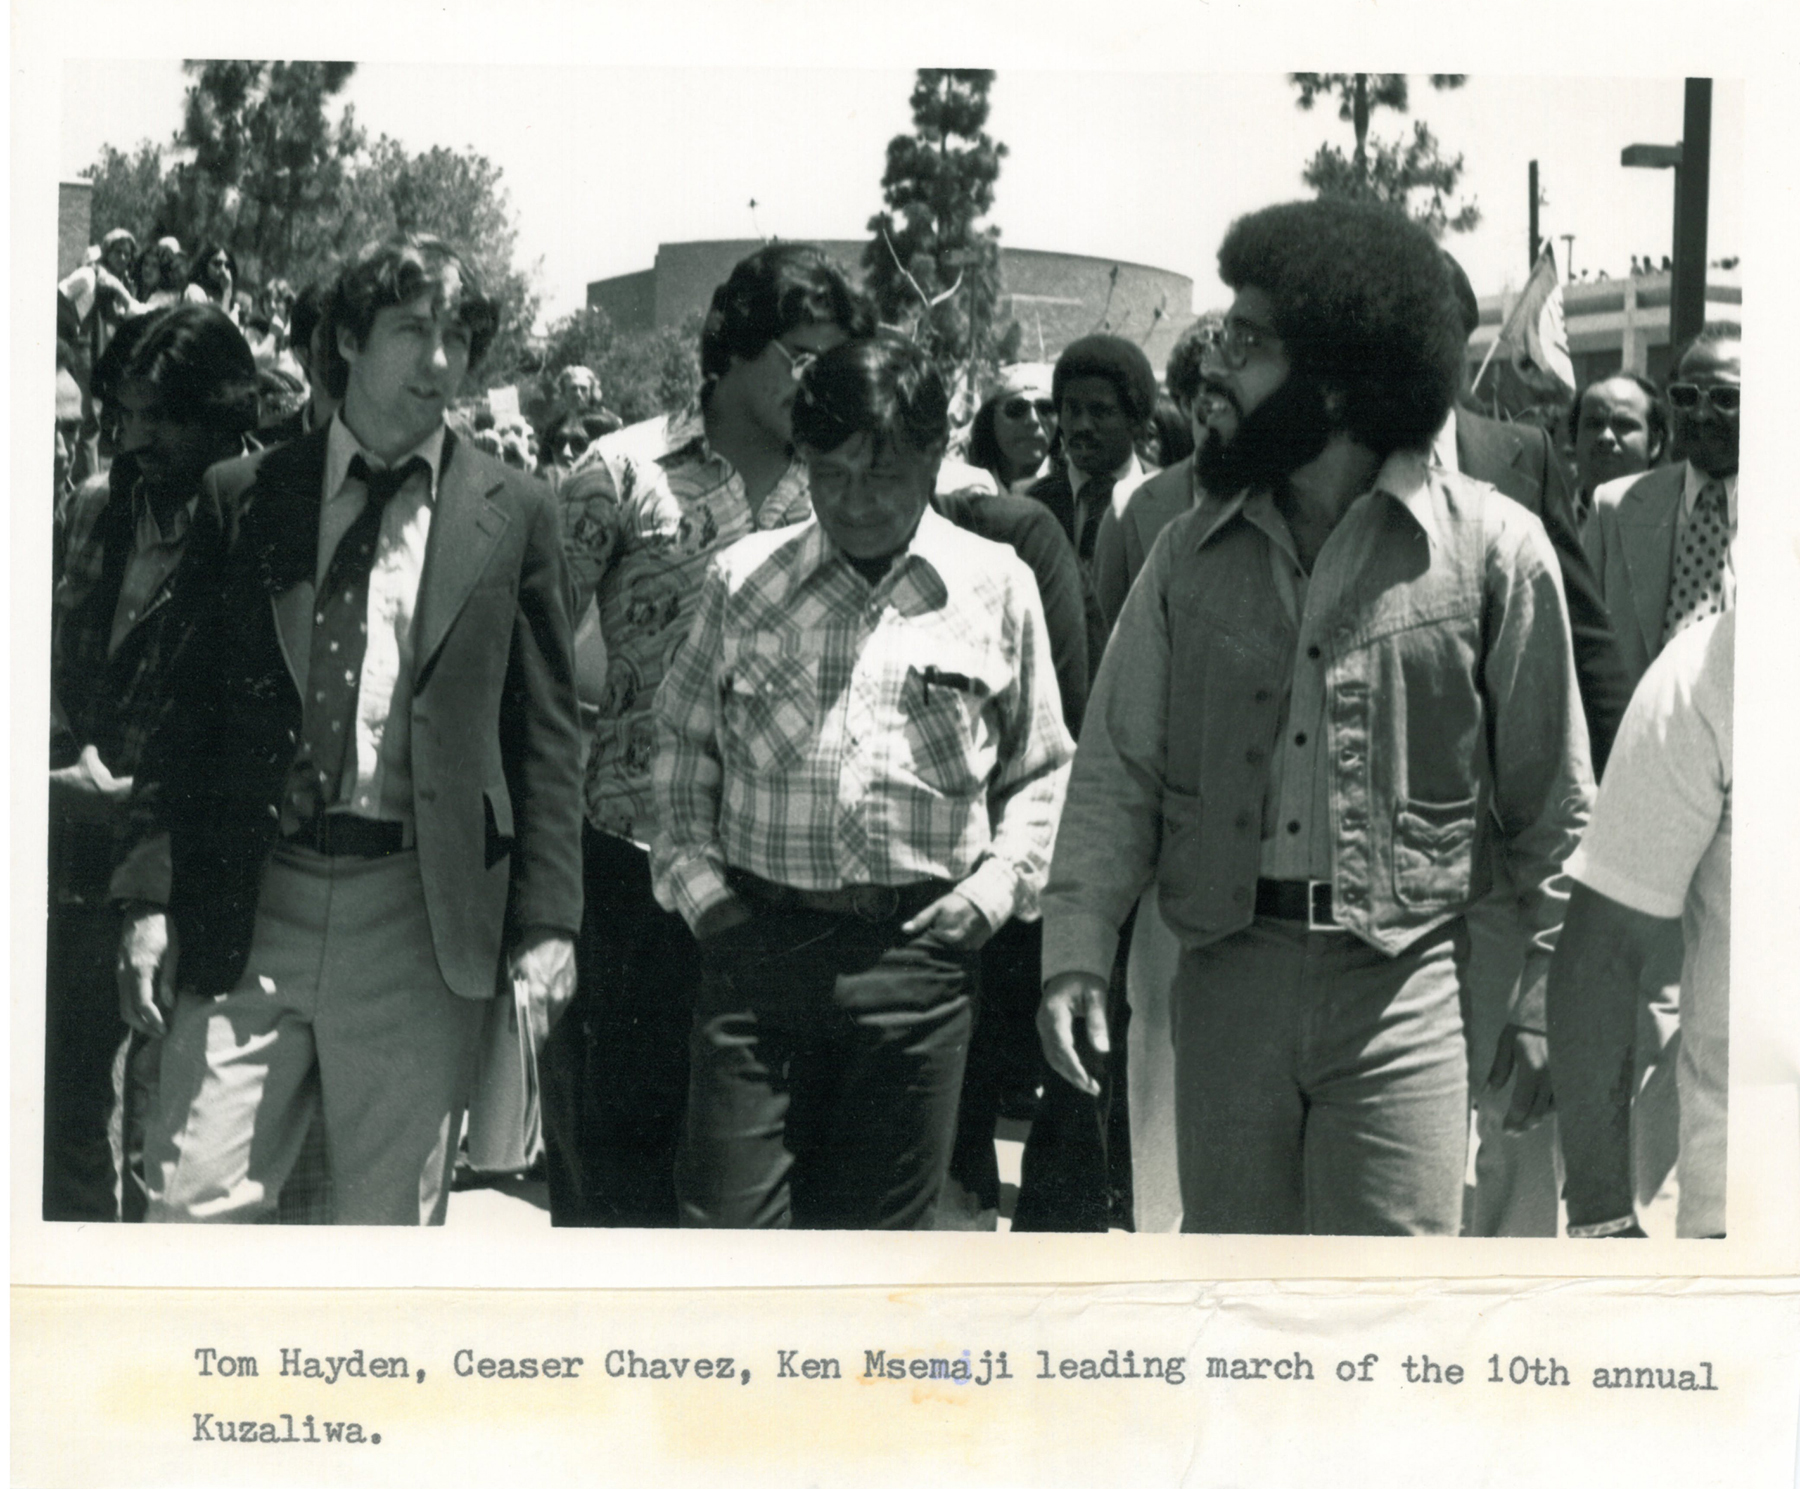 (From left): Tom Hayden, Cesar Chavez (United Farmworkers Union), and Ken Msemaji  (Nia Cultural Organization) leading the march of the 10th annual Malcolm X Kuzaliwa (birthday)   celebration, May 1977. Image credit: Tom Hayden Papers held at the University of Michigan Library